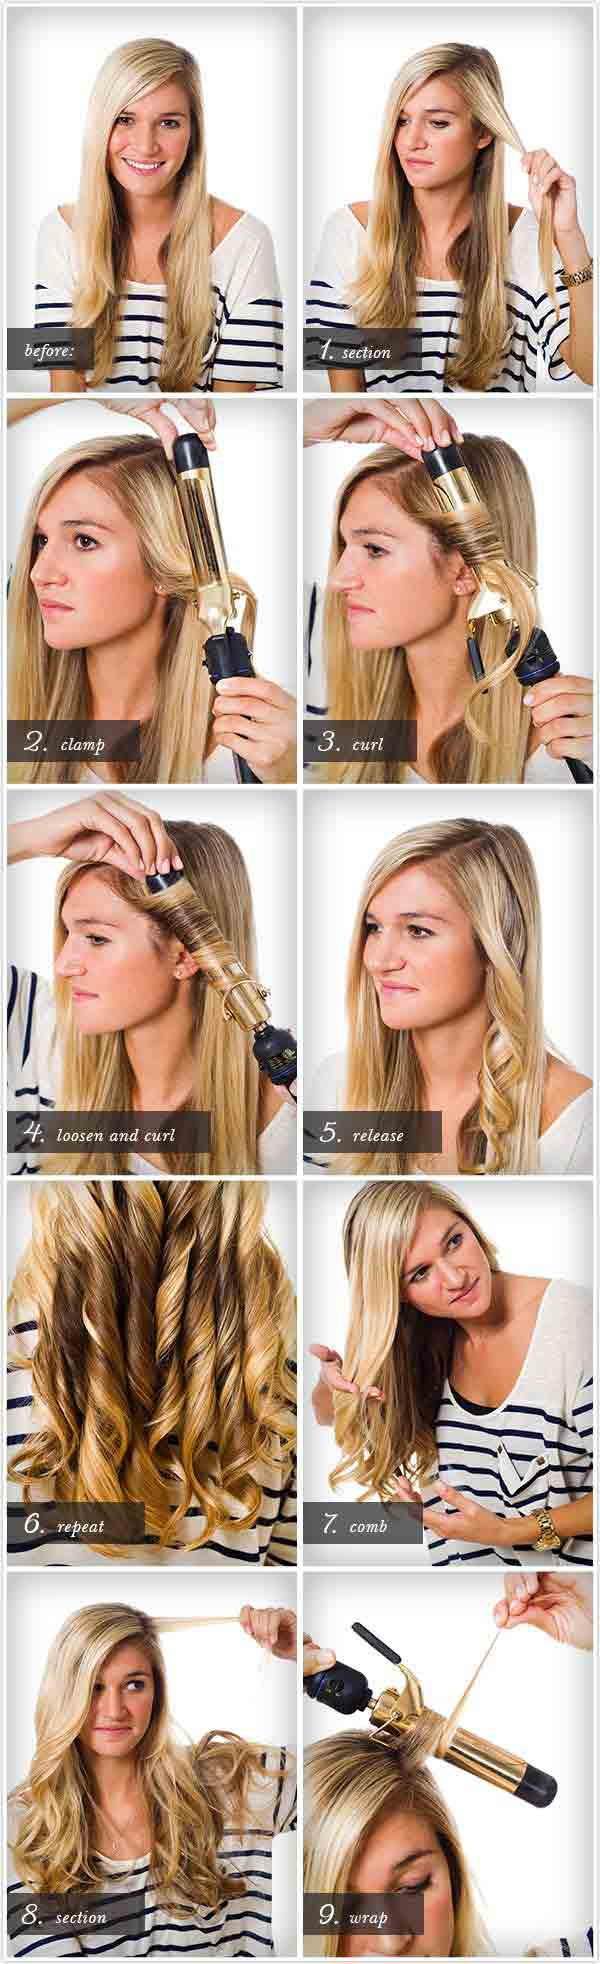 Elegant hair curls tutorial step by step